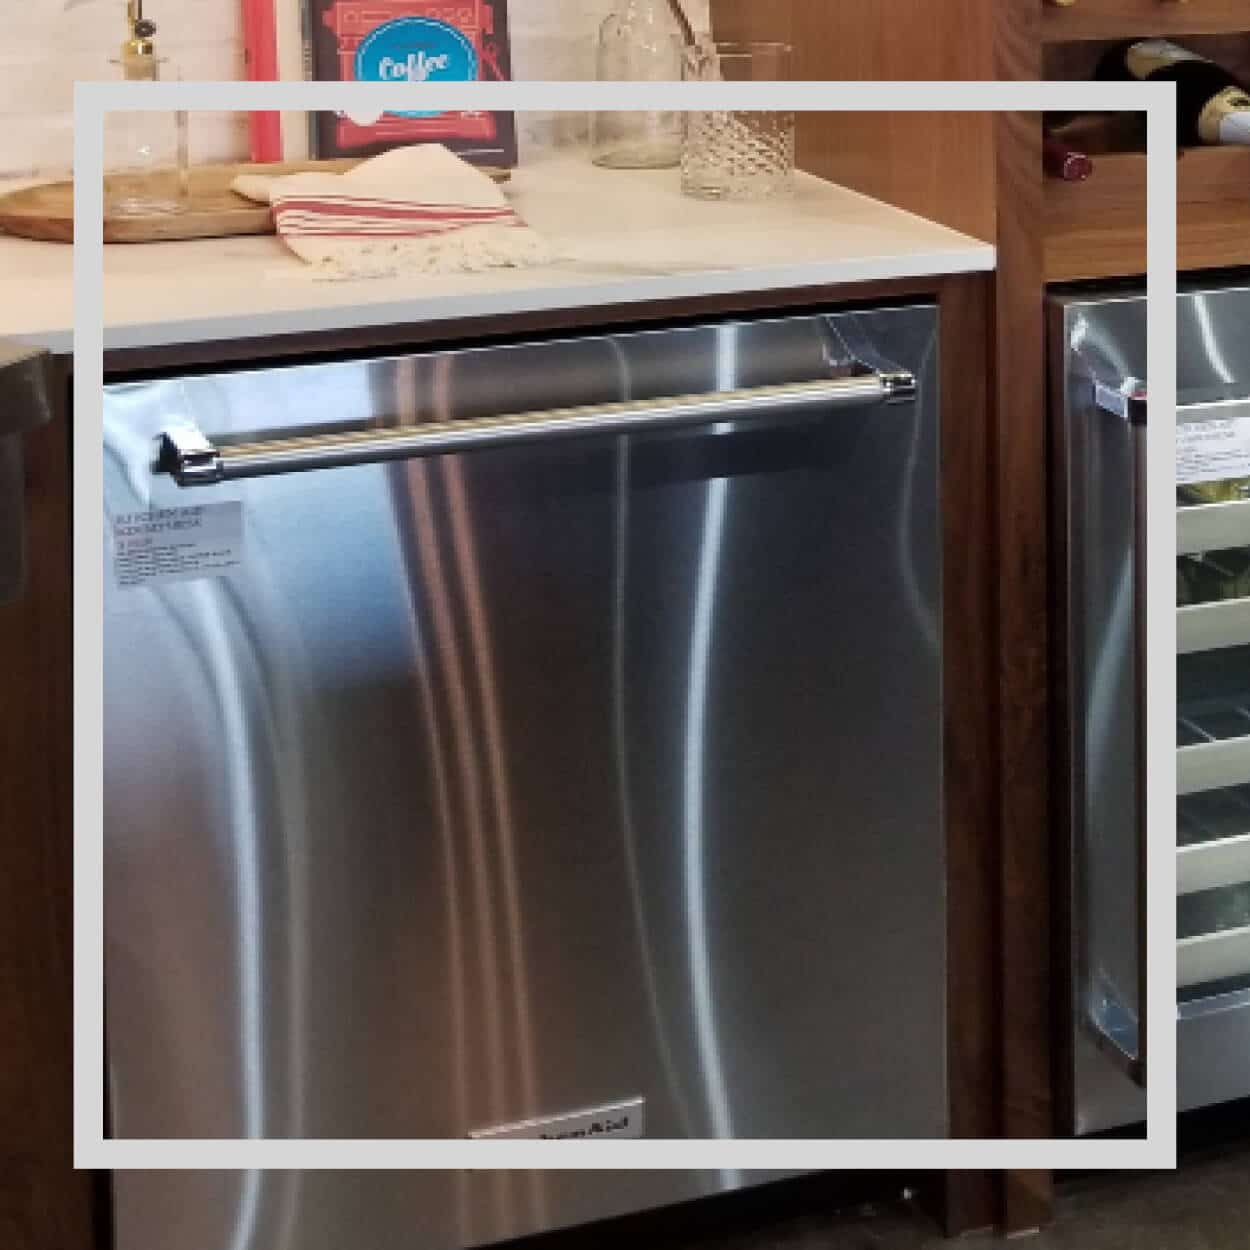 Find KitchenAid Dishwashers at Capital Distributing Showroom | I-35 & Inwood in Dallas